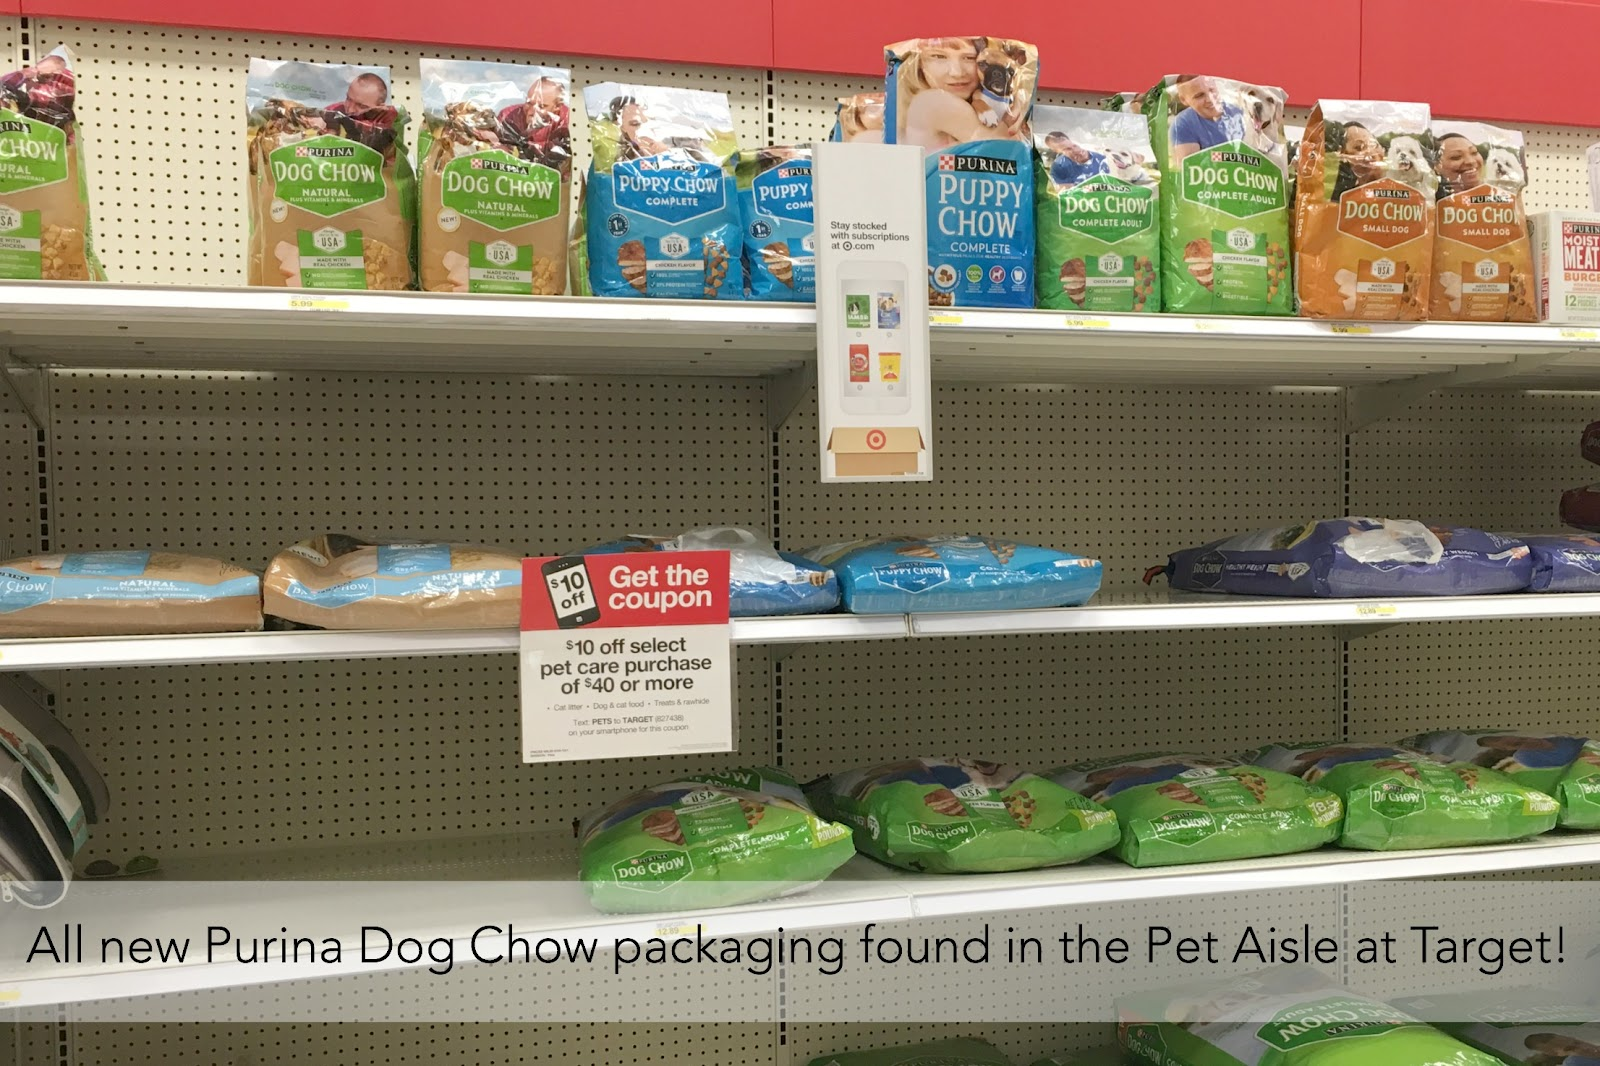 dog-chow-at-target-new-packaging.jpg